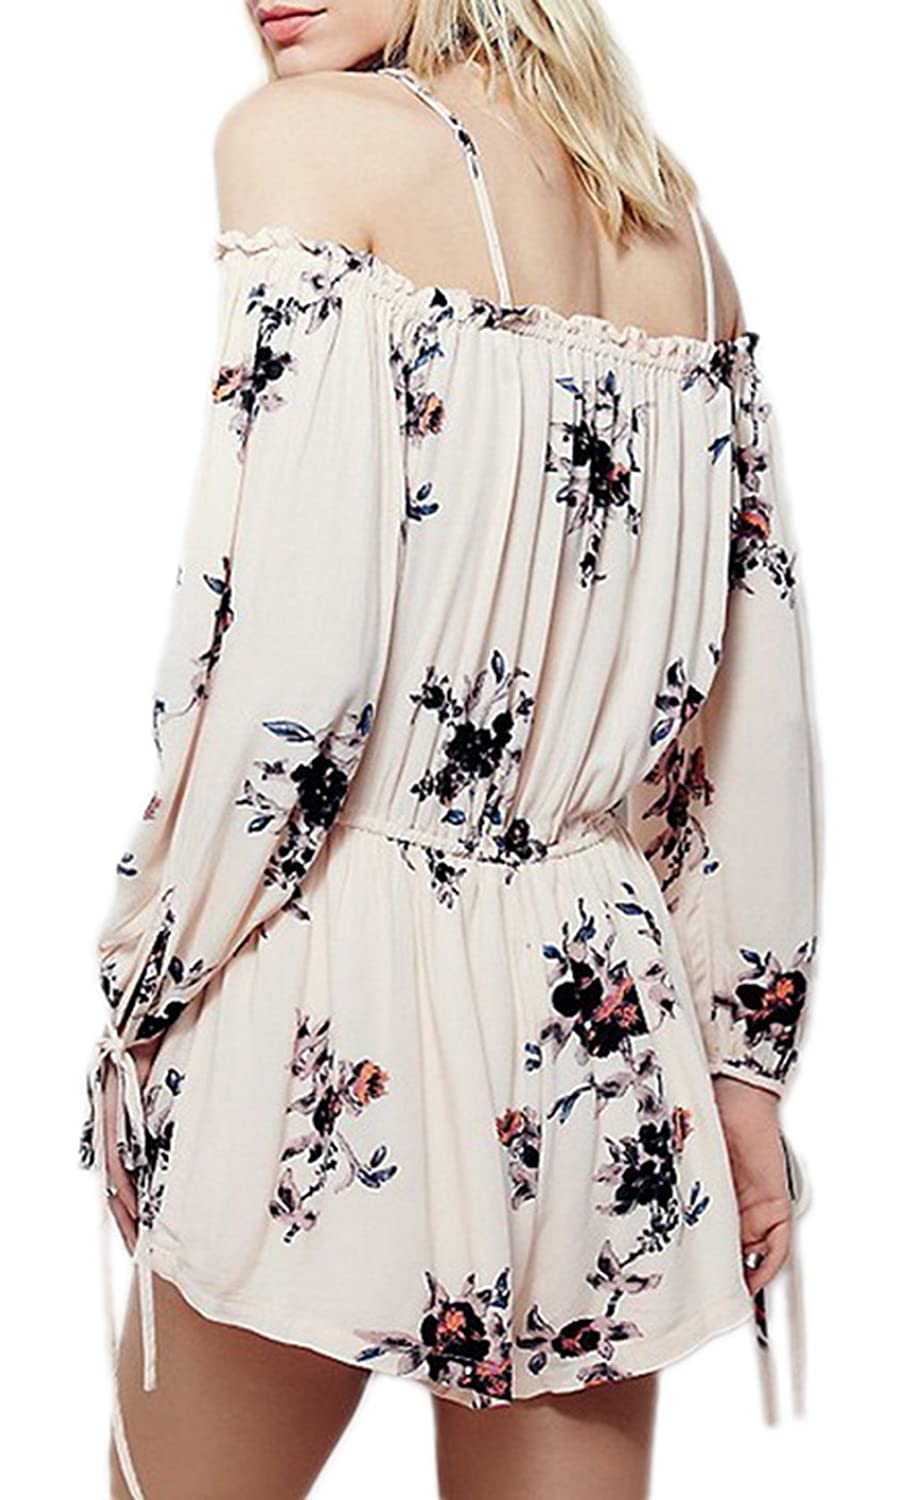 Bigood Occident Chic Floral Off-the-shoulder Mini Skirt Party Dress